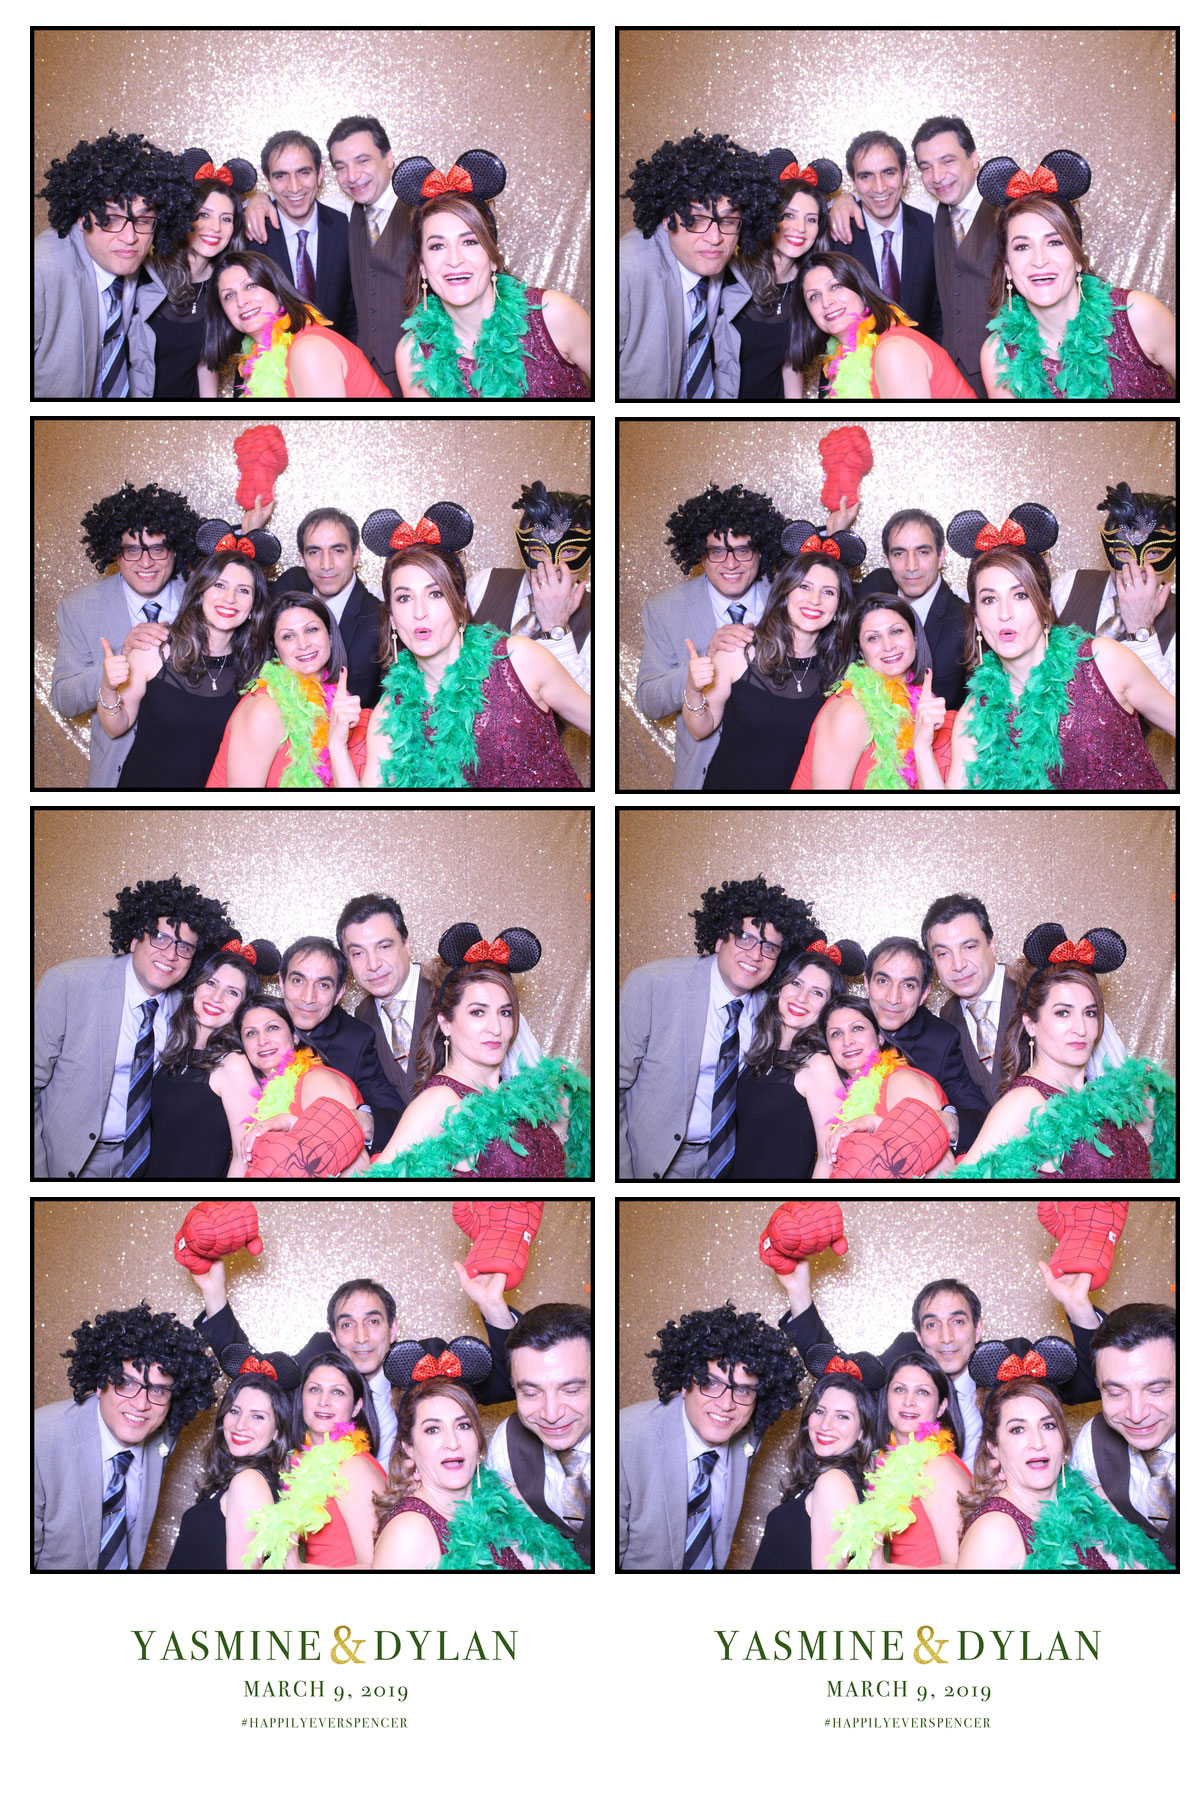 wedding event celebration photo booth with gold backdrop